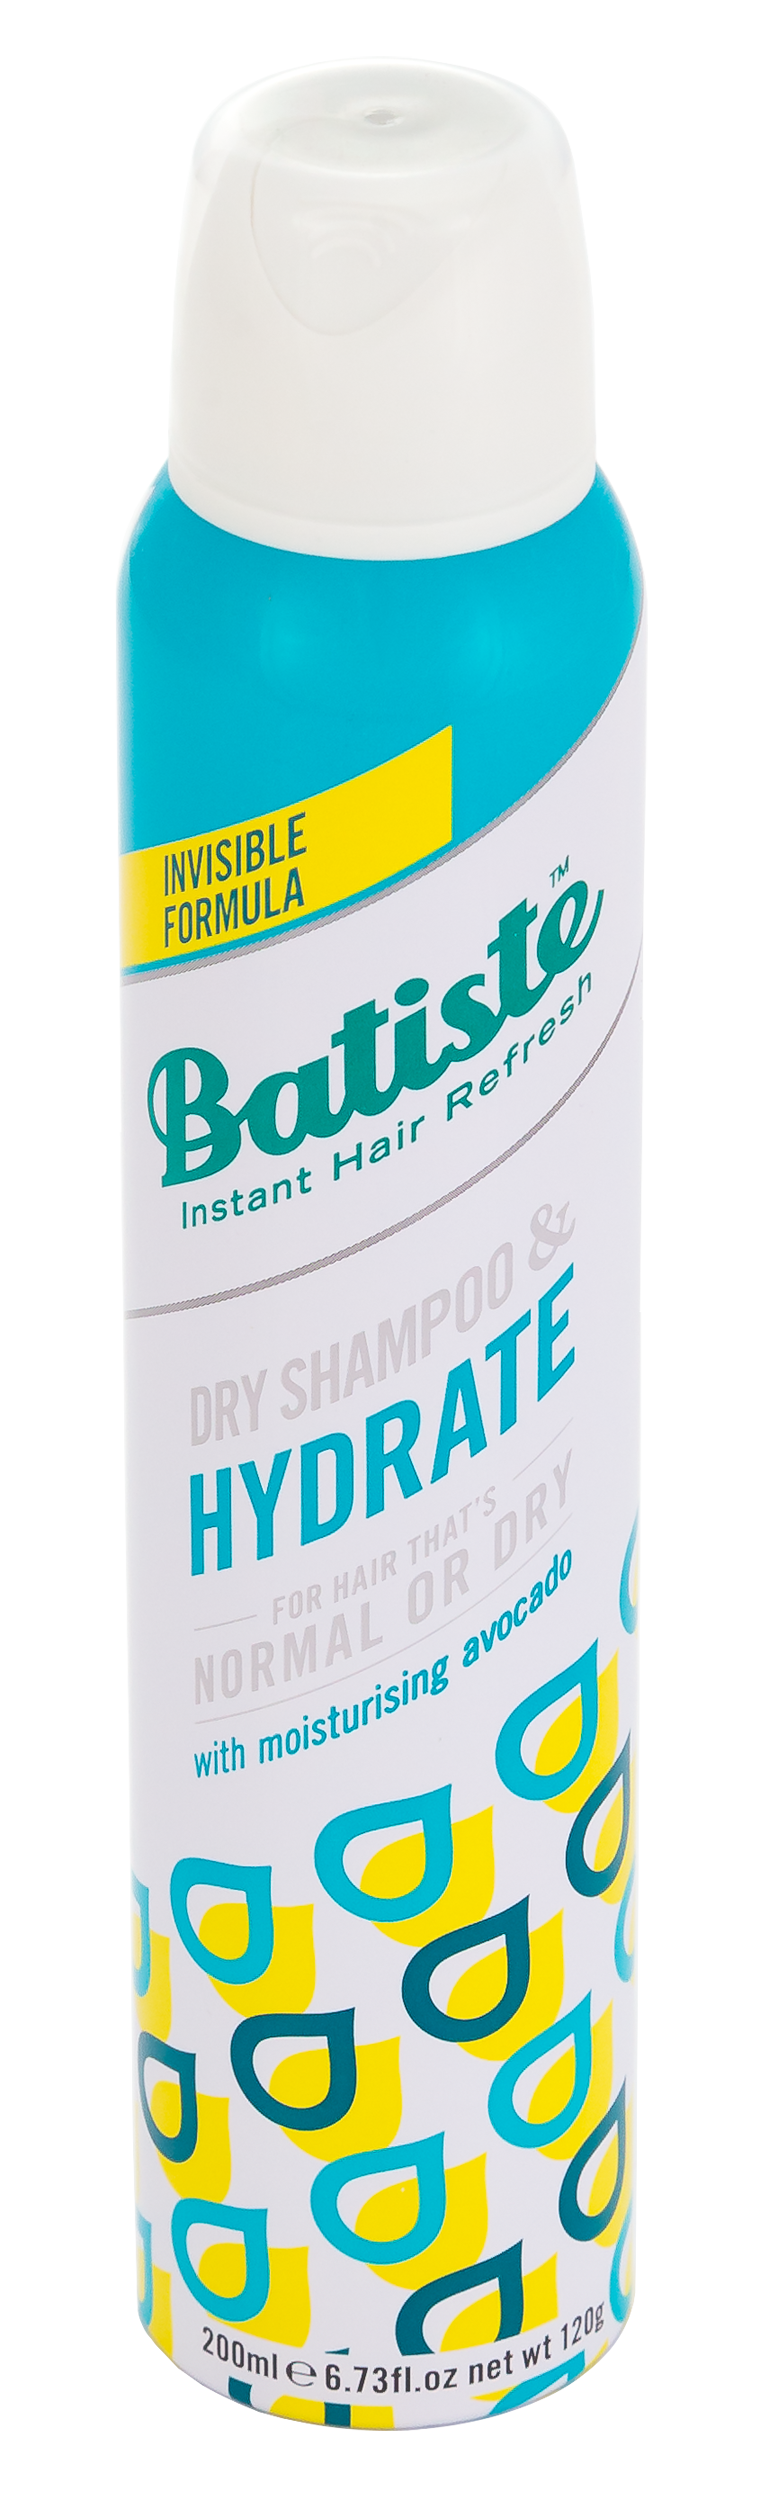 hydrate suchy szampon batiste IMG_5672png